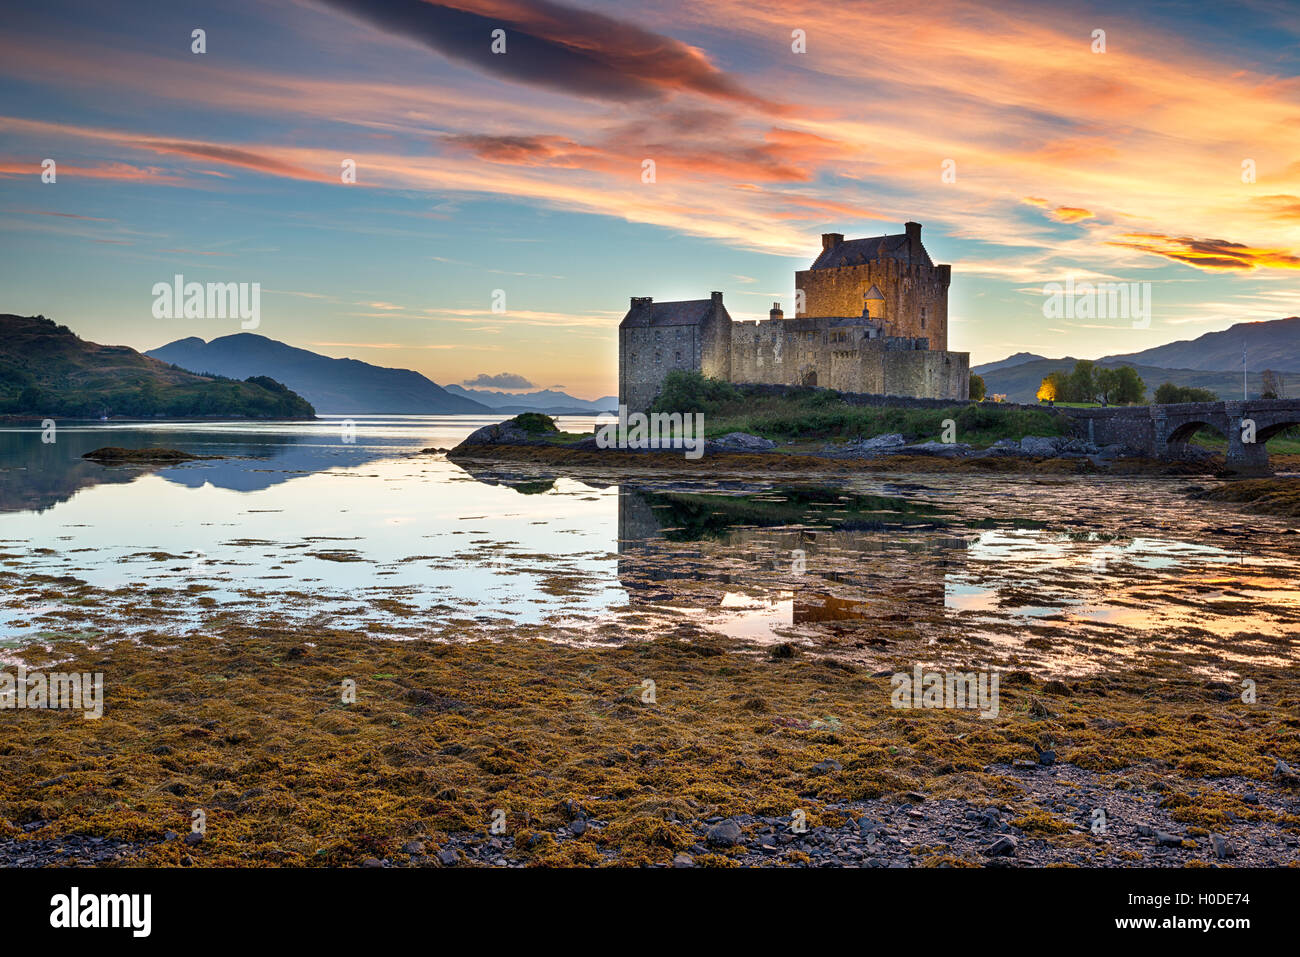 Beautiful sunset over the castle at Eilean Donan in the Scottish Highlands - Stock Image